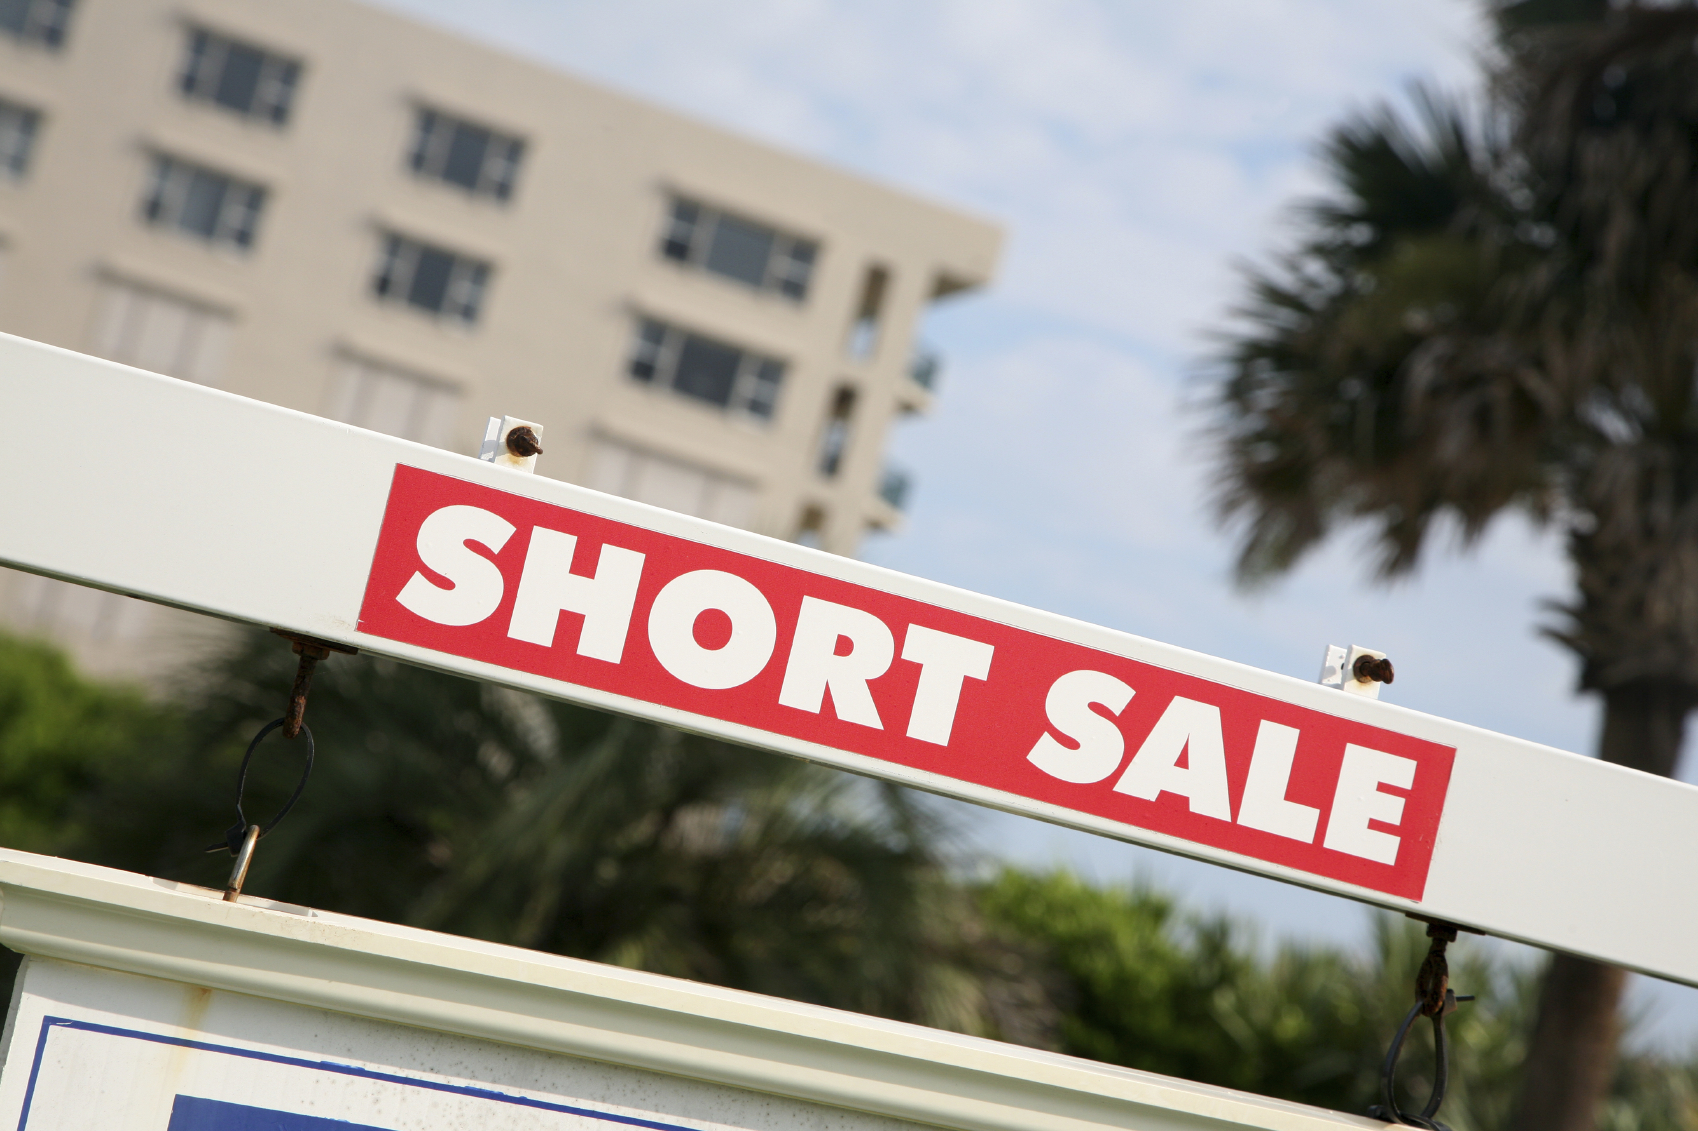 Short Sale sign photo